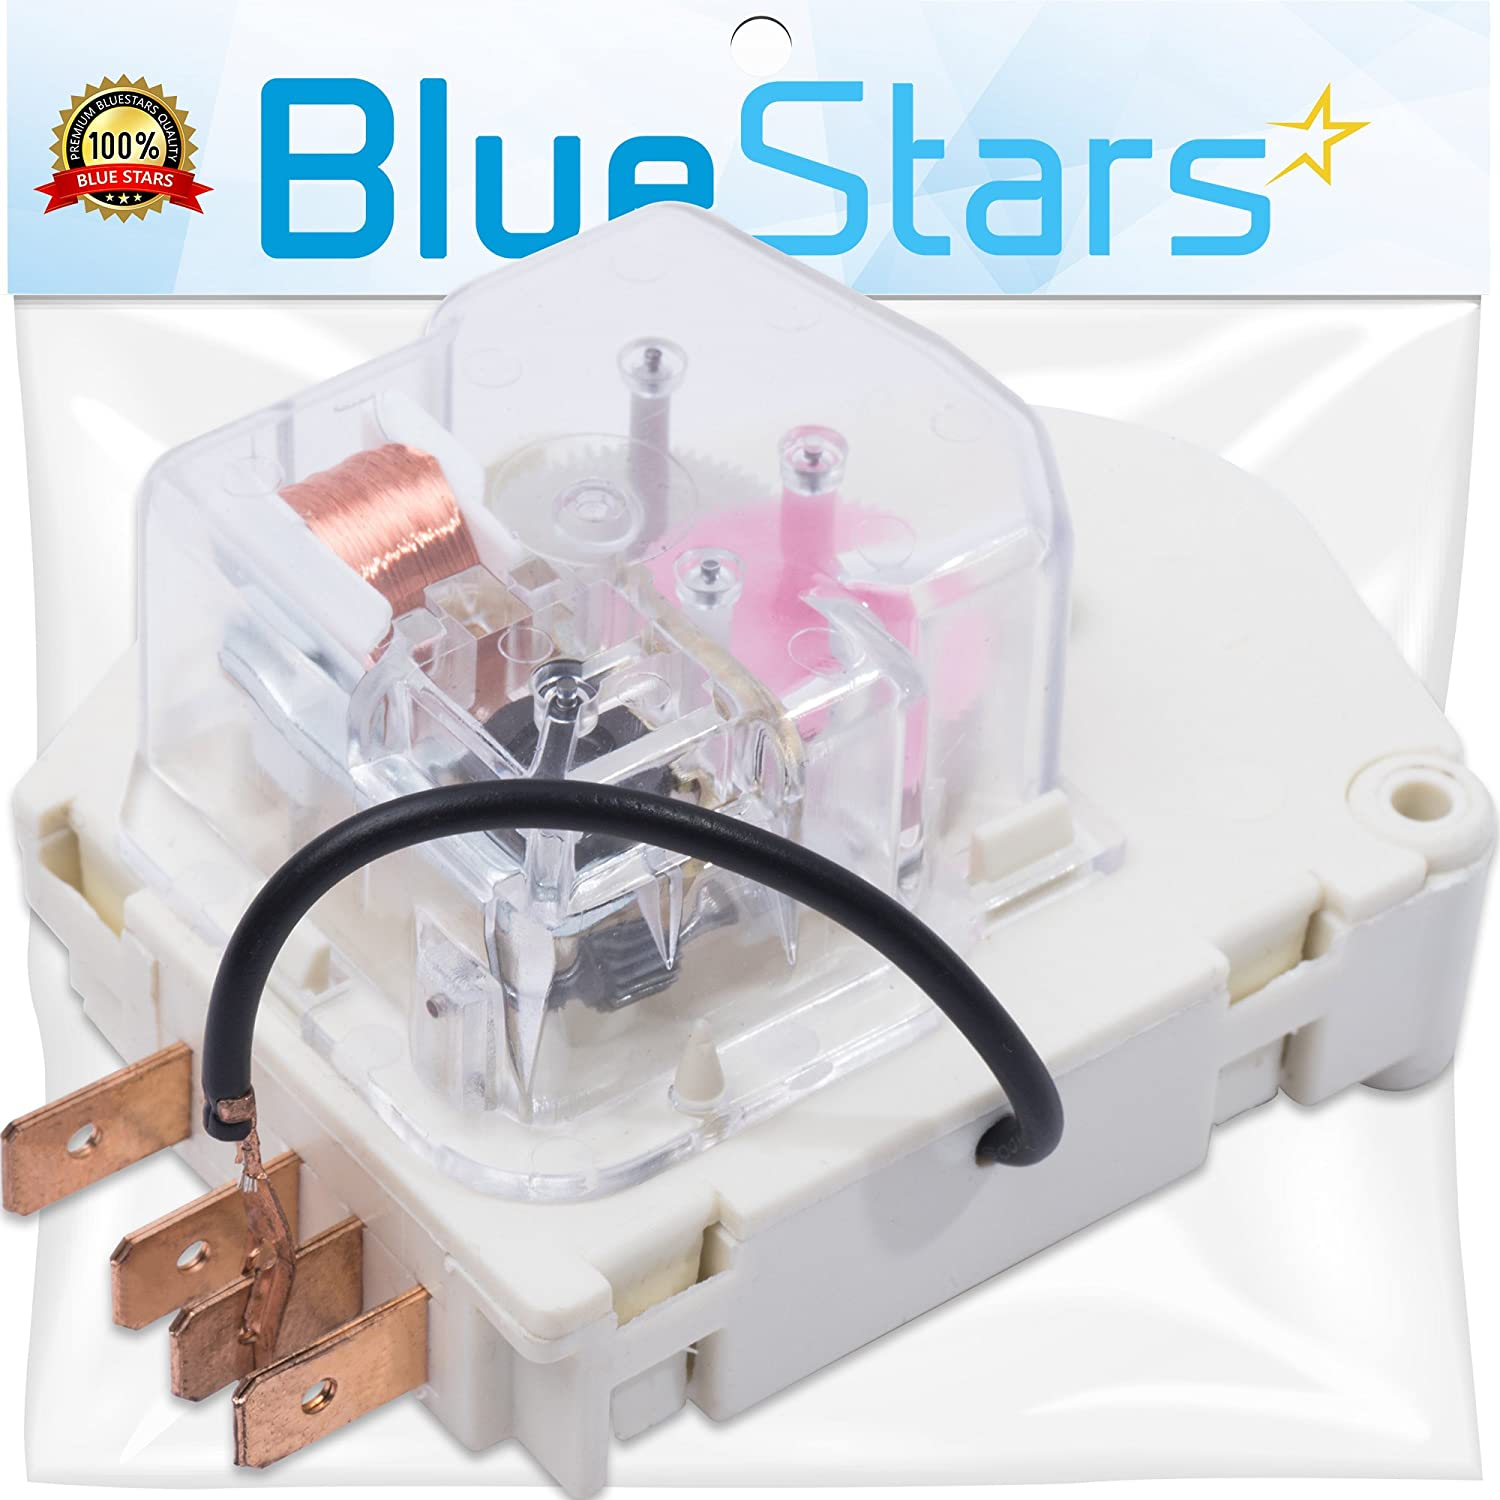 W10822278 Refrigerator Defrost Timer by Blue Stars - Exact Fit for Whirlpool KitchenAid Kenmore Refrigerator - Replaces PS11723171 945514 482493